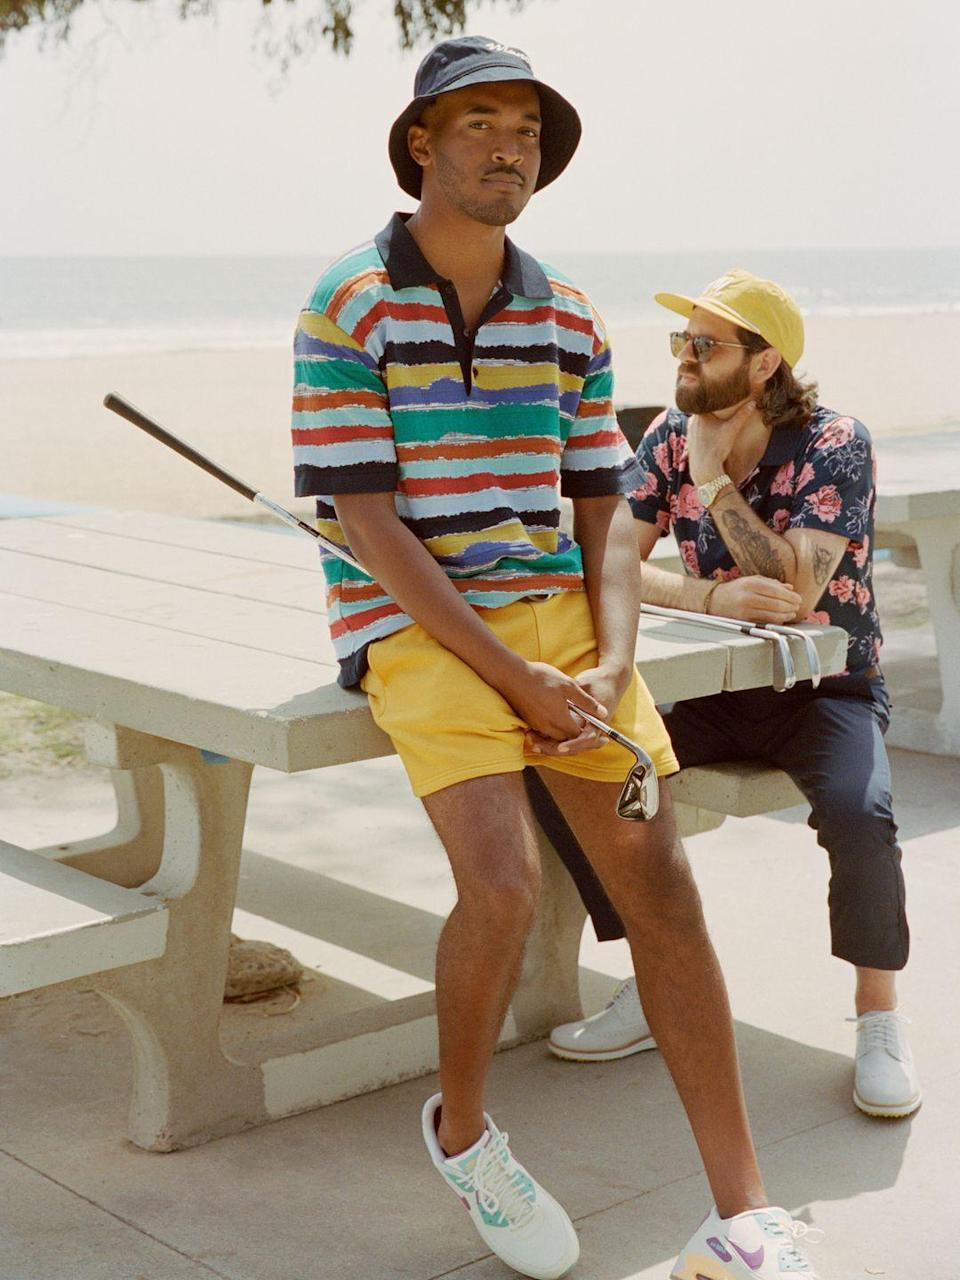 """<p>The bucket hat is back in a big way, and that extends to the golf course. Also, some of your favorite sneaker silhouettes have now been equipped with spikes or soft grips on their soles. Take advantage. </p><p><em>On Johnson: Polo by Missoni; Sweatshorts by Malbon Golf; Air Max 90 G NRG Sneakers by Nike; Hat by Manors. On Vick: Polo and Trousers by Bonobos; Hat by Malbon Golf; Shoes by Cole Haan; Sunglasses by Garrett Leight California Optical.</em></p><p><a class=""""link rapid-noclick-resp"""" href=""""https://www.missoni.com/us/missoni/men/view-all-menswear"""" rel=""""nofollow noopener"""" target=""""_blank"""" data-ylk=""""slk:Shop Missoni"""">Shop Missoni</a></p><p><a class=""""link rapid-noclick-resp"""" href=""""https://malbongolf.com/"""" rel=""""nofollow noopener"""" target=""""_blank"""" data-ylk=""""slk:Shop Malbon Golf"""">Shop Malbon Golf</a></p><p><a class=""""link rapid-noclick-resp"""" href=""""https://go.redirectingat.com?id=74968X1596630&url=https%3A%2F%2Fwww.nike.com%2Fw%2Fgolf-shoes-23q9wzy7ok&sref=https%3A%2F%2Fwww.esquire.com%2Fstyle%2Fmens-fashion%2Fg37291403%2Fbest-golf-style-2021%2F"""" rel=""""nofollow noopener"""" target=""""_blank"""" data-ylk=""""slk:Shop Nike"""">Shop Nike</a></p><p><a class=""""link rapid-noclick-resp"""" href=""""https://manorsgolf.com/"""" rel=""""nofollow noopener"""" target=""""_blank"""" data-ylk=""""slk:Shop Manors"""">Shop Manors</a></p><p><a class=""""link rapid-noclick-resp"""" href=""""https://go.redirectingat.com?id=74968X1596630&url=https%3A%2F%2Fbonobos.com%2Fshop%2Fsports-golf&sref=https%3A%2F%2Fwww.esquire.com%2Fstyle%2Fmens-fashion%2Fg37291403%2Fbest-golf-style-2021%2F"""" rel=""""nofollow noopener"""" target=""""_blank"""" data-ylk=""""slk:Shop Bonobos"""">Shop Bonobos</a></p><p><a class=""""link rapid-noclick-resp"""" href=""""https://go.redirectingat.com?id=74968X1596630&url=https%3A%2F%2Fwww.colehaan.com%2Fmens-shoes-golf&sref=https%3A%2F%2Fwww.esquire.com%2Fstyle%2Fmens-fashion%2Fg37291403%2Fbest-golf-style-2021%2F"""" rel=""""nofollow noopener"""" target=""""_blank"""" data-ylk=""""slk:Shop Cole Haan"""">Shop Cole Haan</a></p>"""